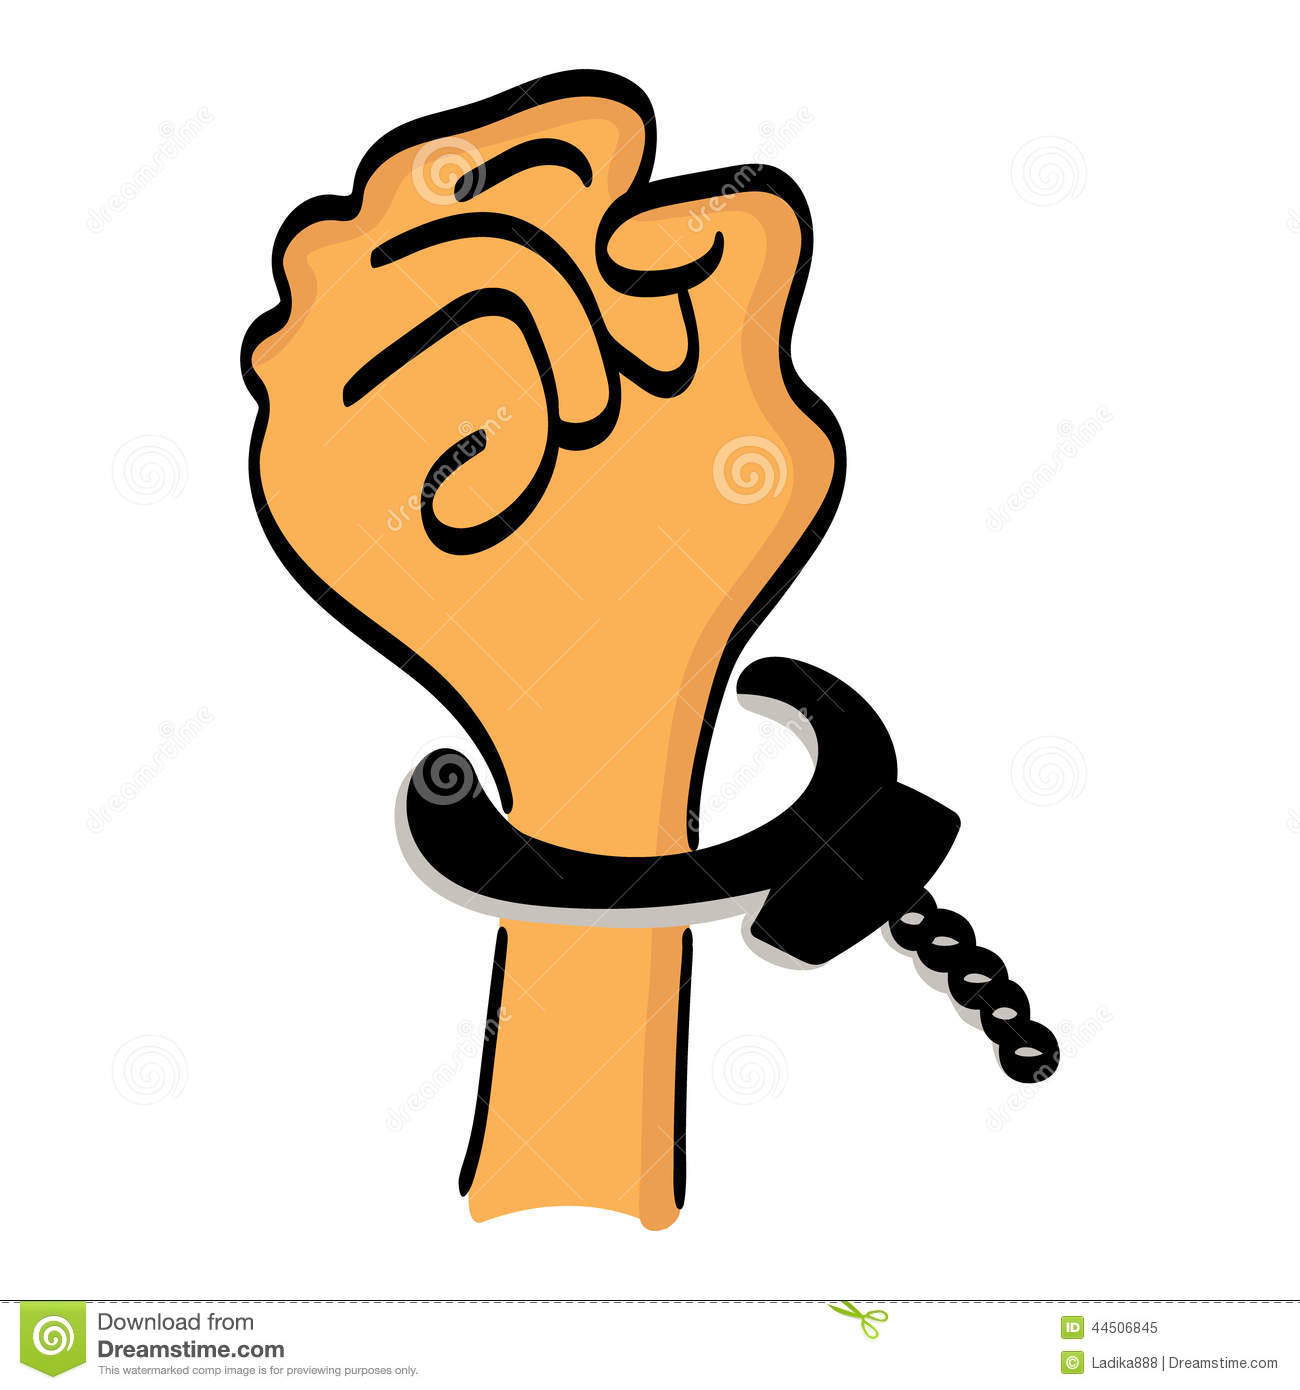 One Cartoon Hand Man In Handcuffs Stock Vector - Image: 44506845